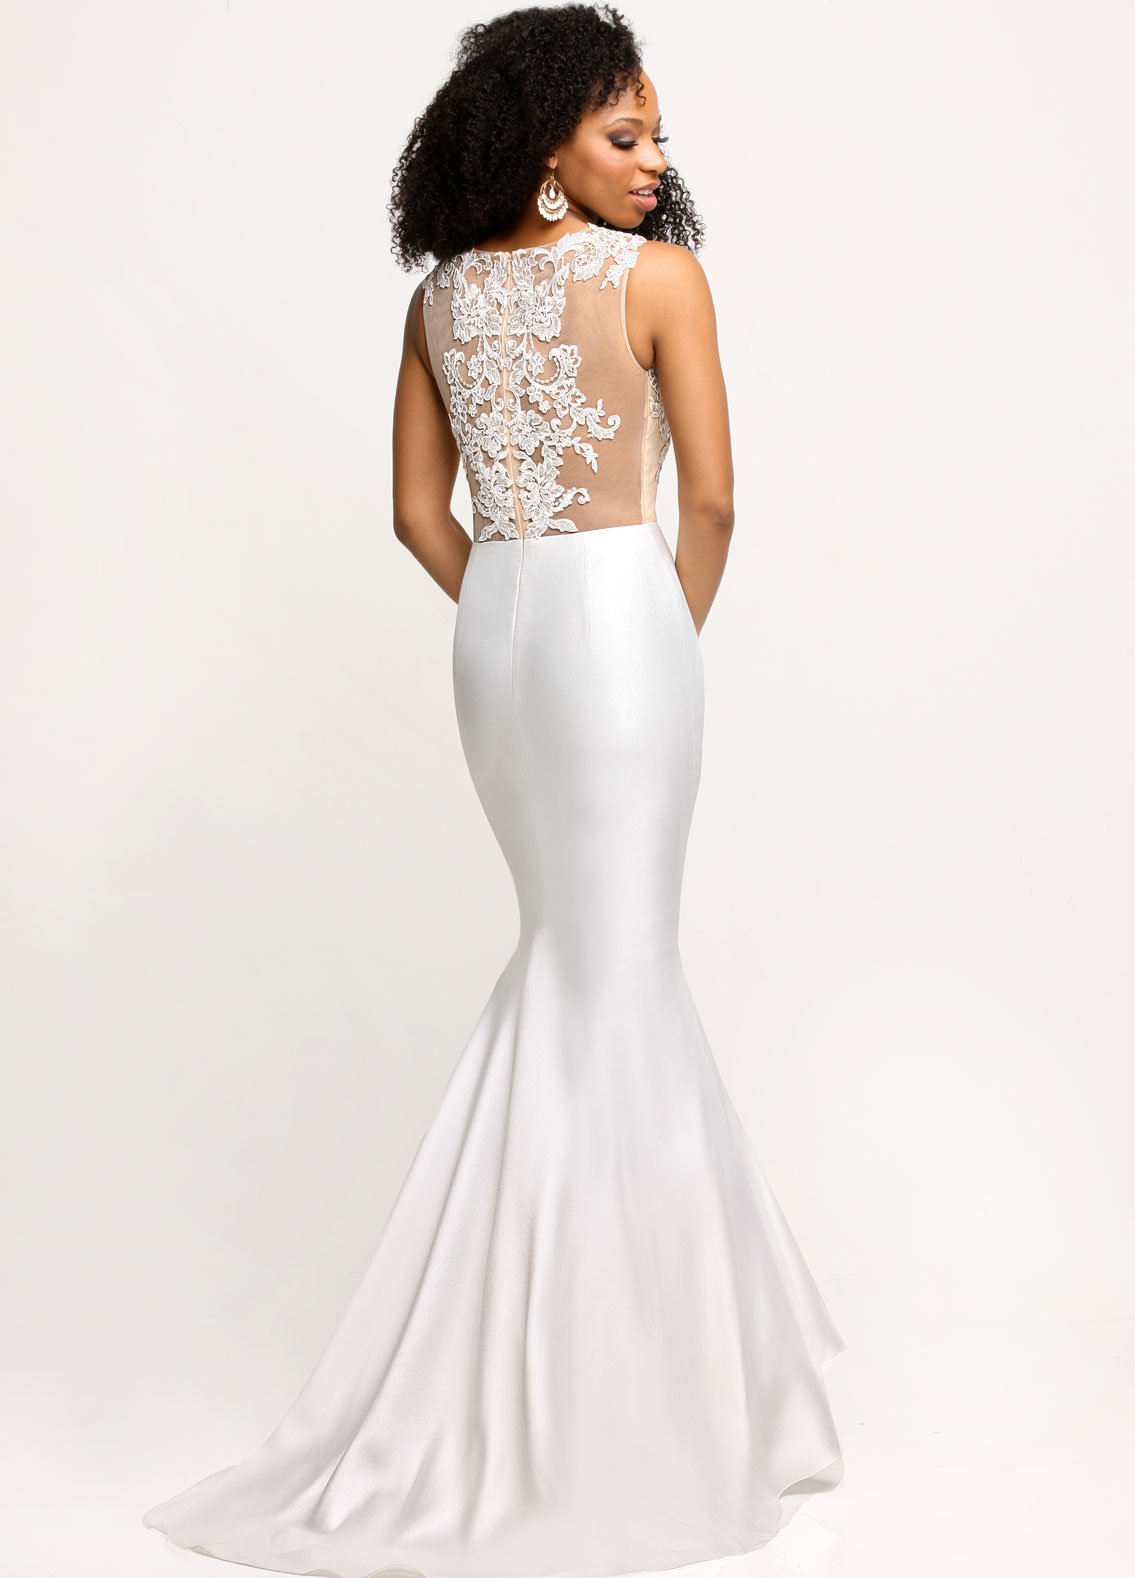 Image showing back view of style #71669